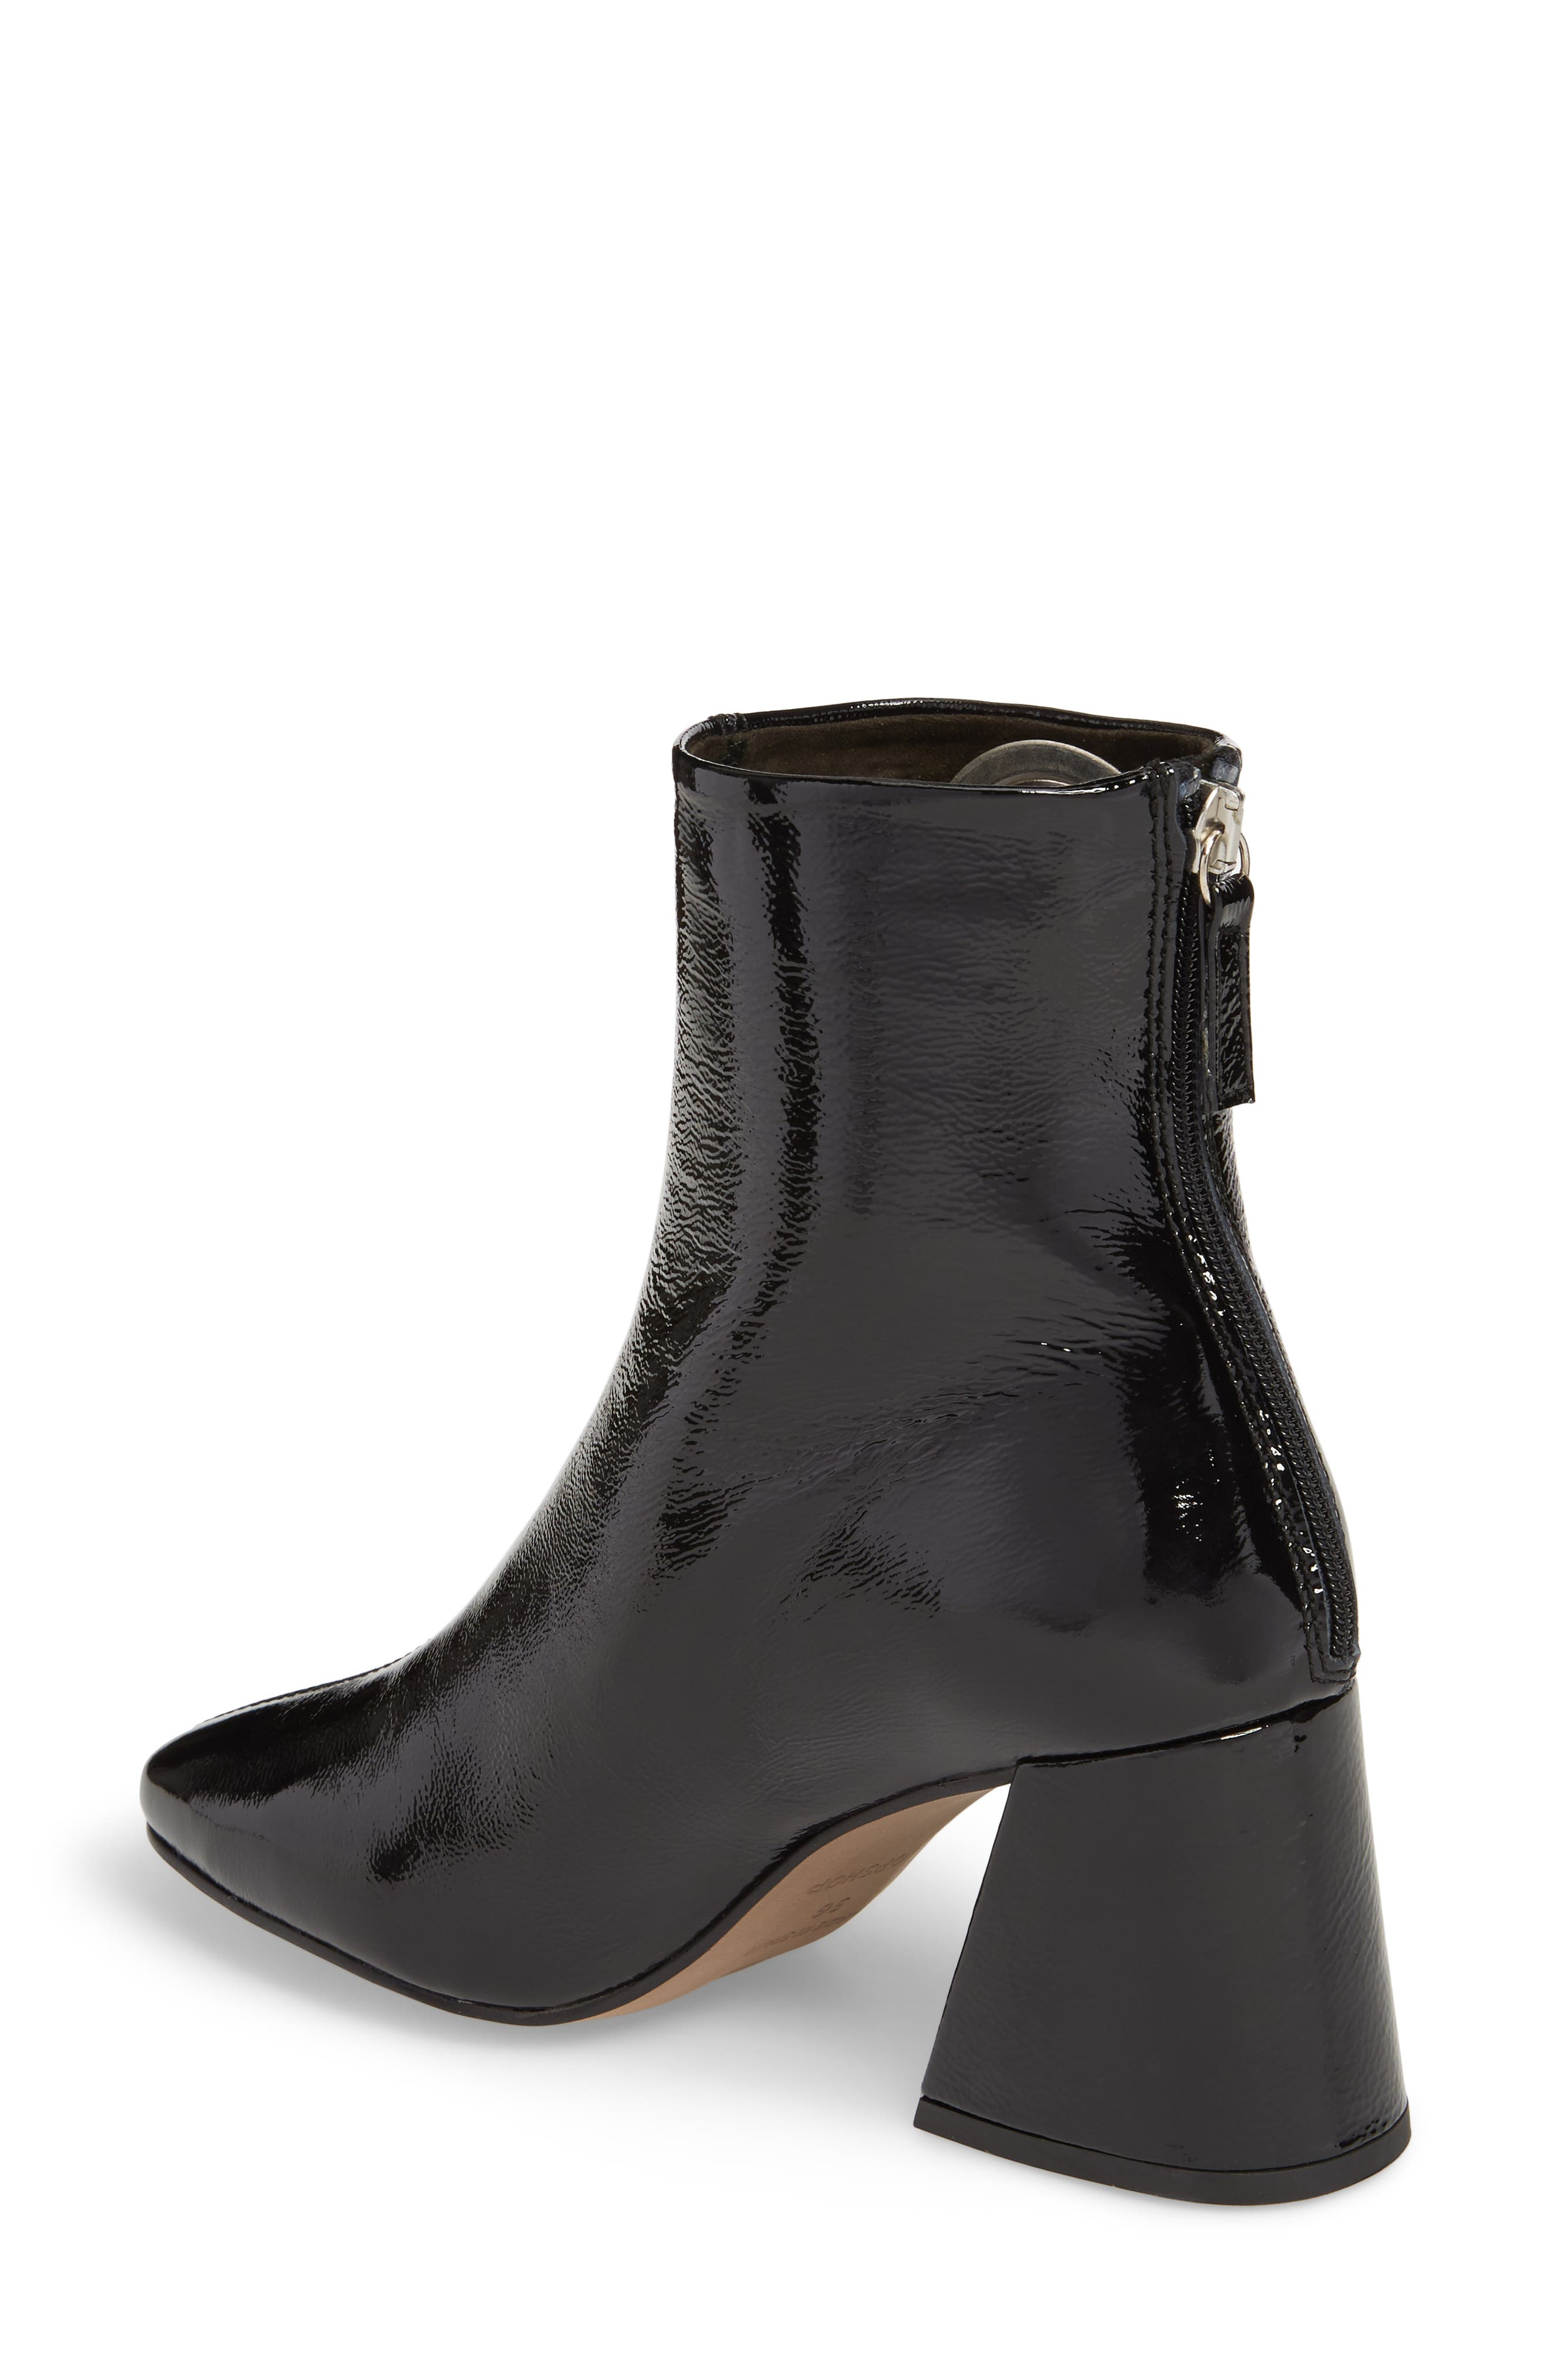 Malone Block Heel Bootie,                             Alternate thumbnail 2, color,                             Black